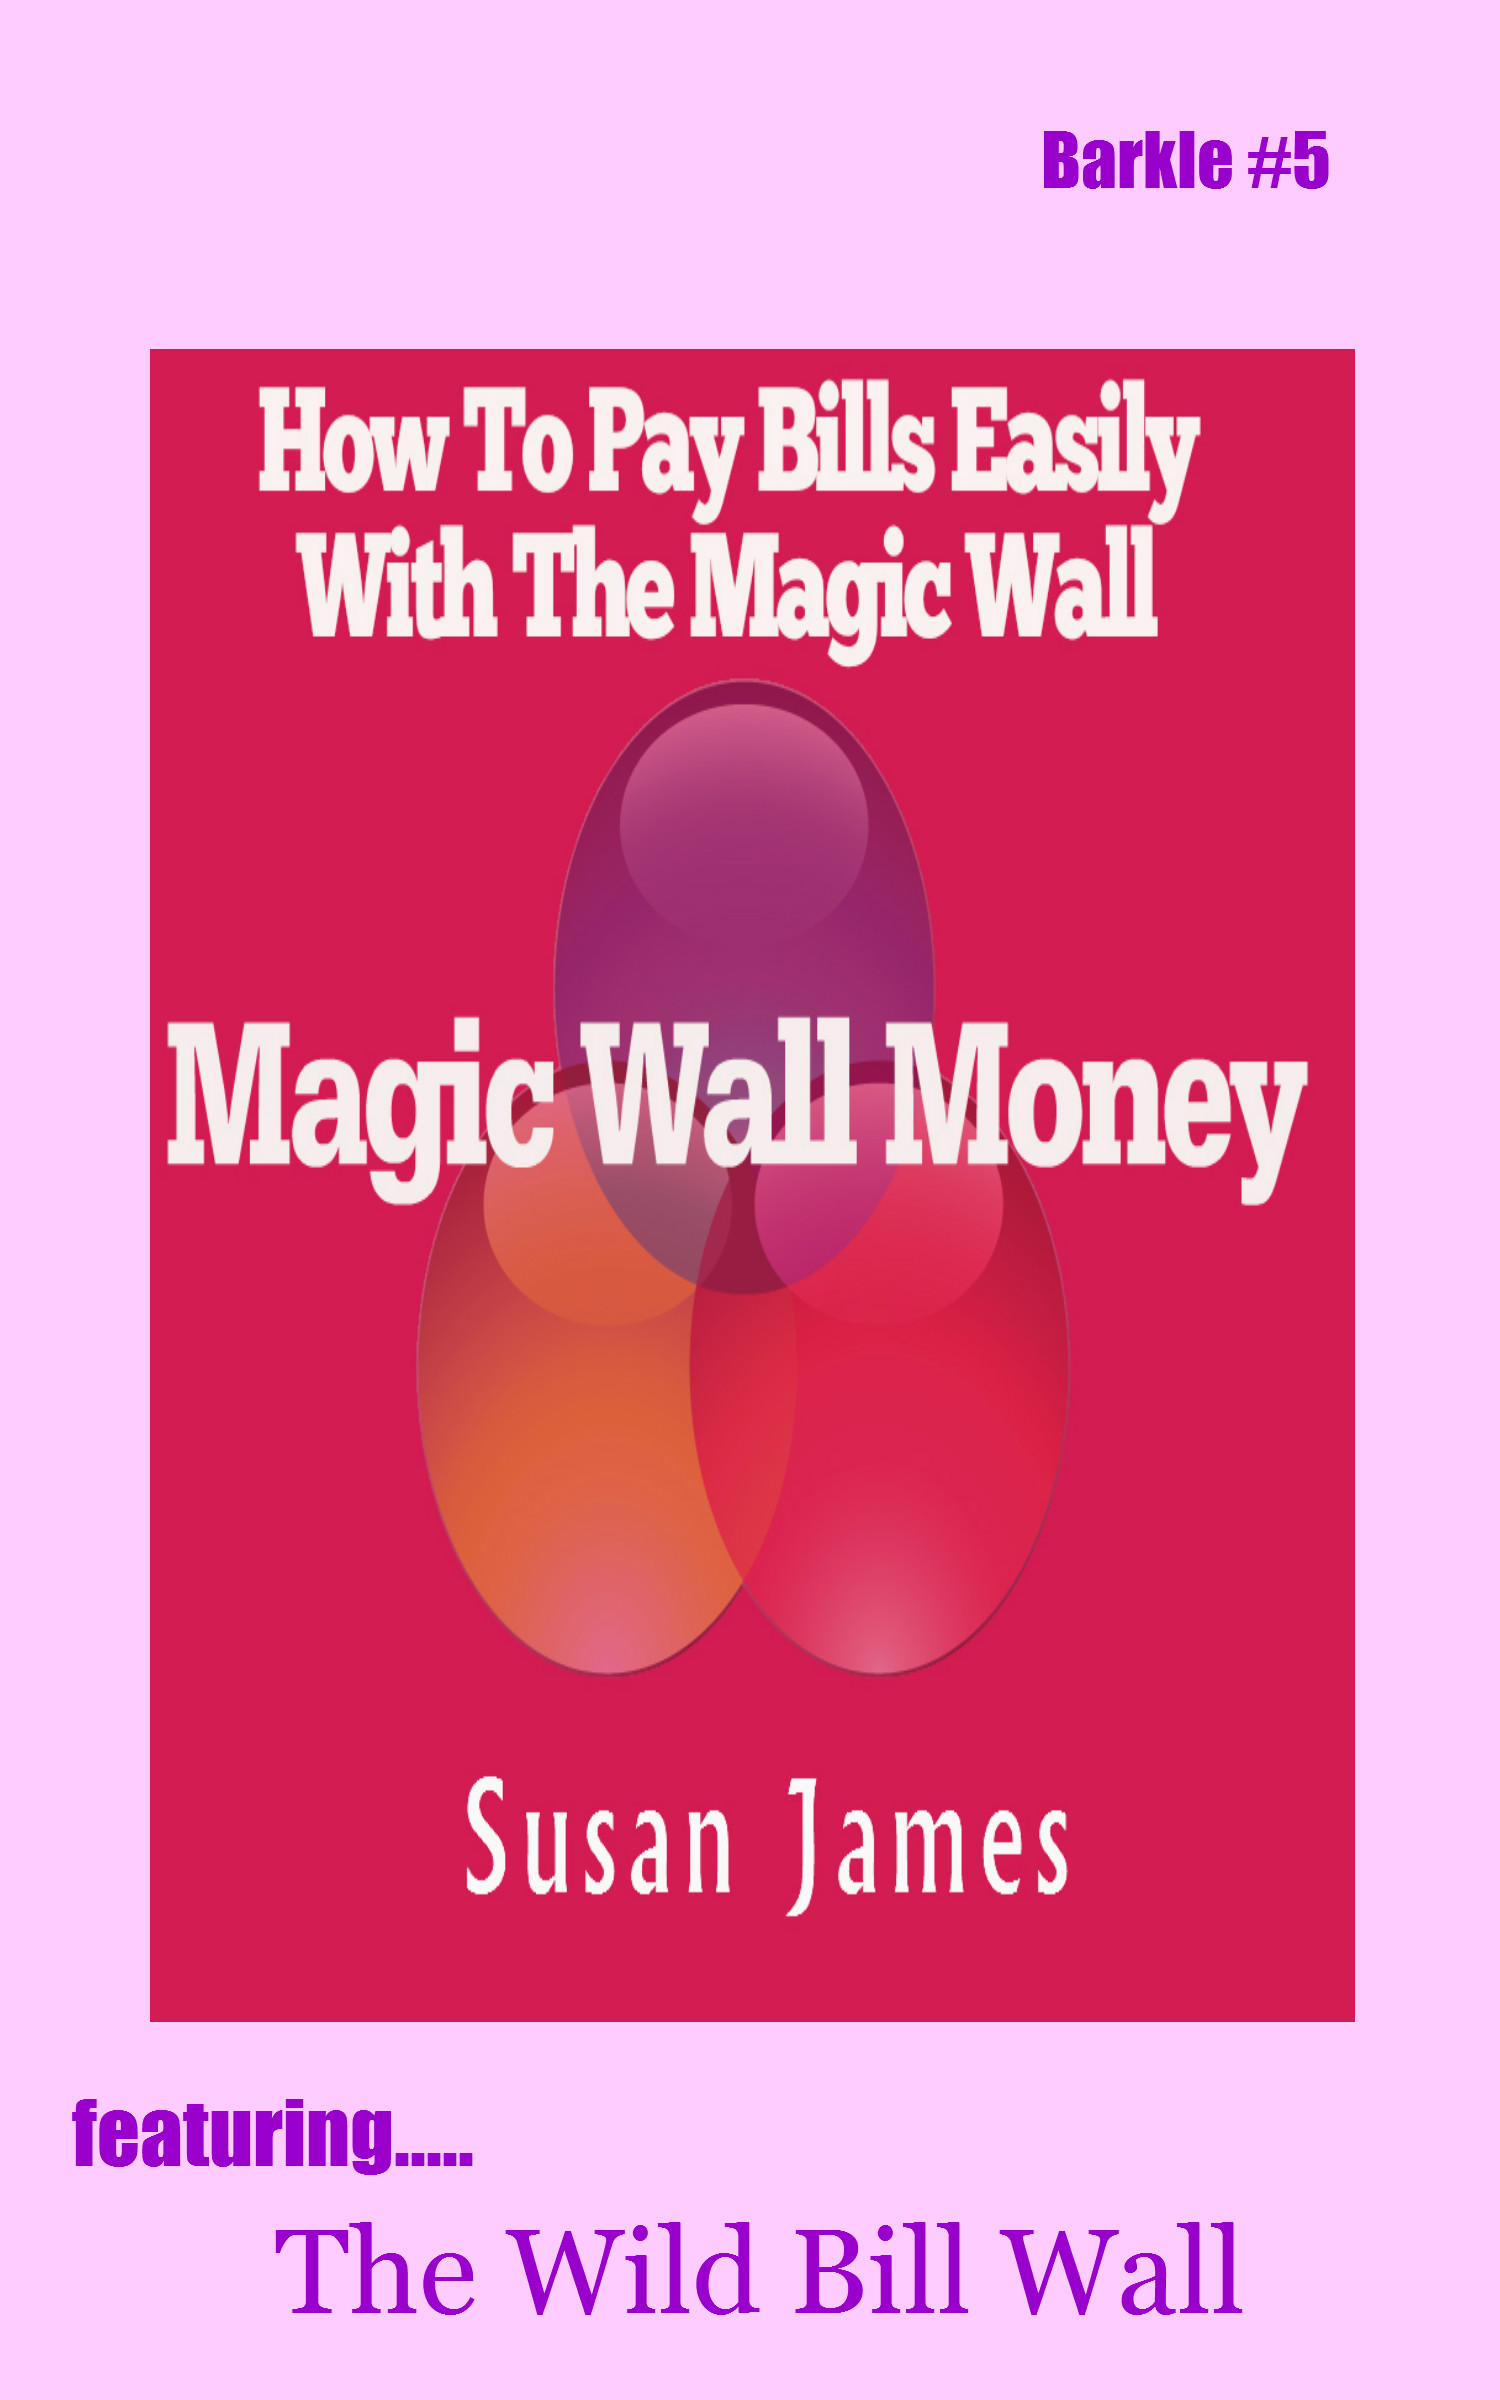 How To Pay Bills Easily w/The Magic Wall